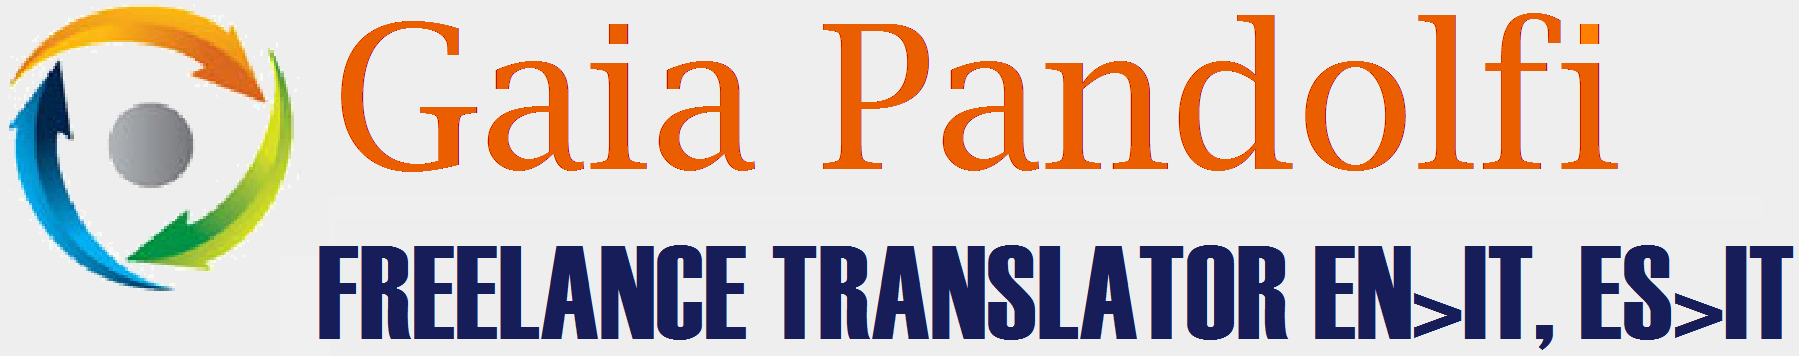 Gaia Pandolfi         Freelance Translator EN>IT, ES>IT